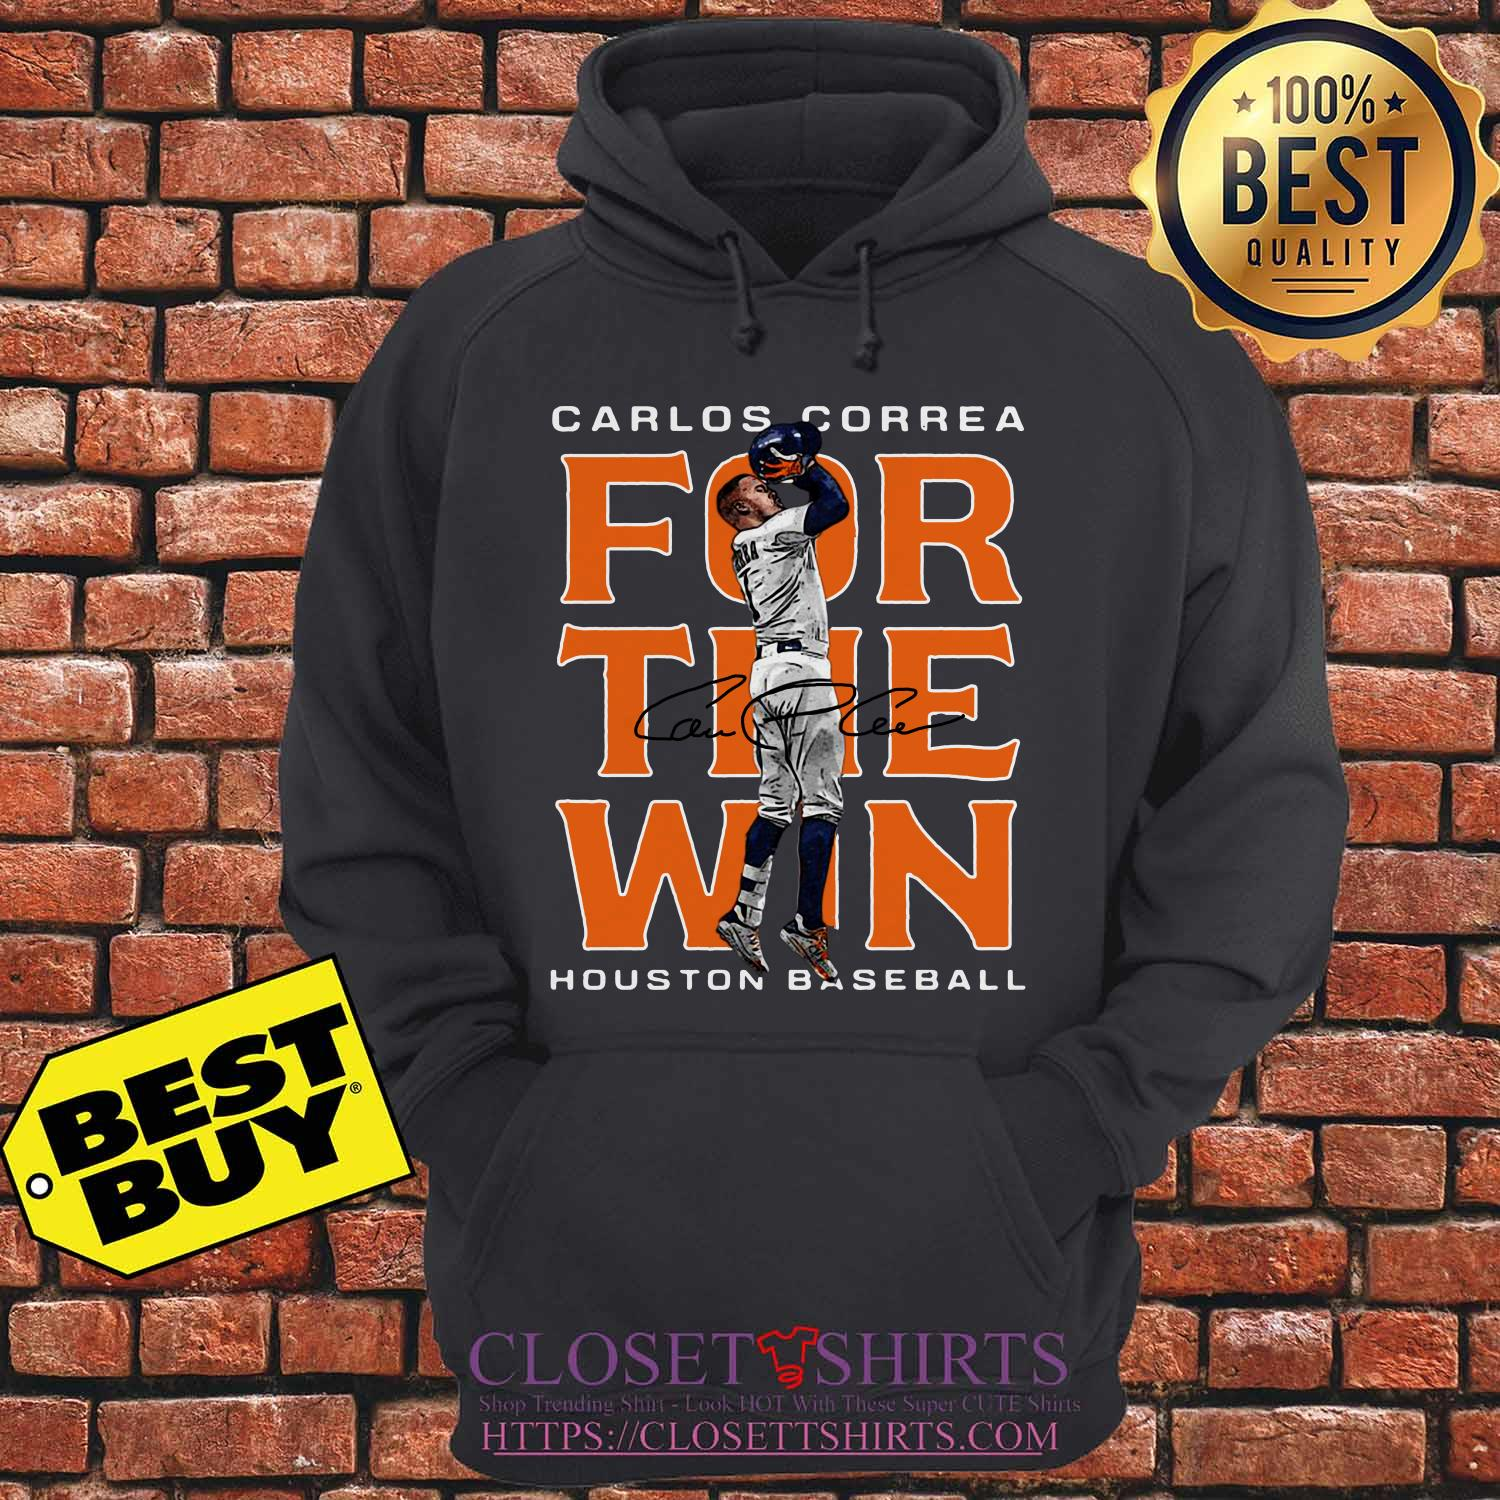 Carlos Correa Houston Astros Baseball Signature hoodie